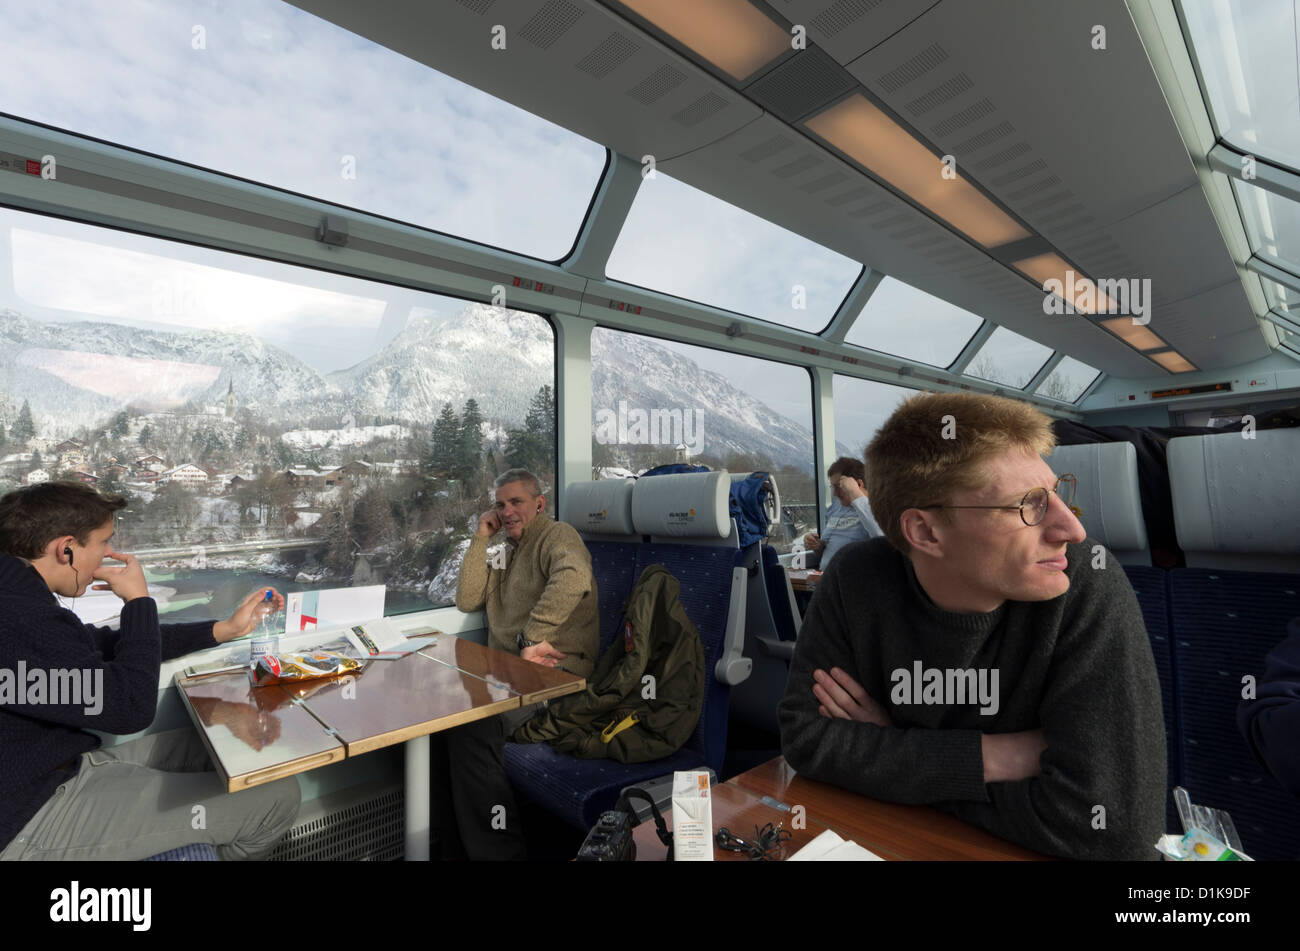 Passengers on the Glacier Express Train look out onto the mountains near Brig, Switzerland. - Stock Image